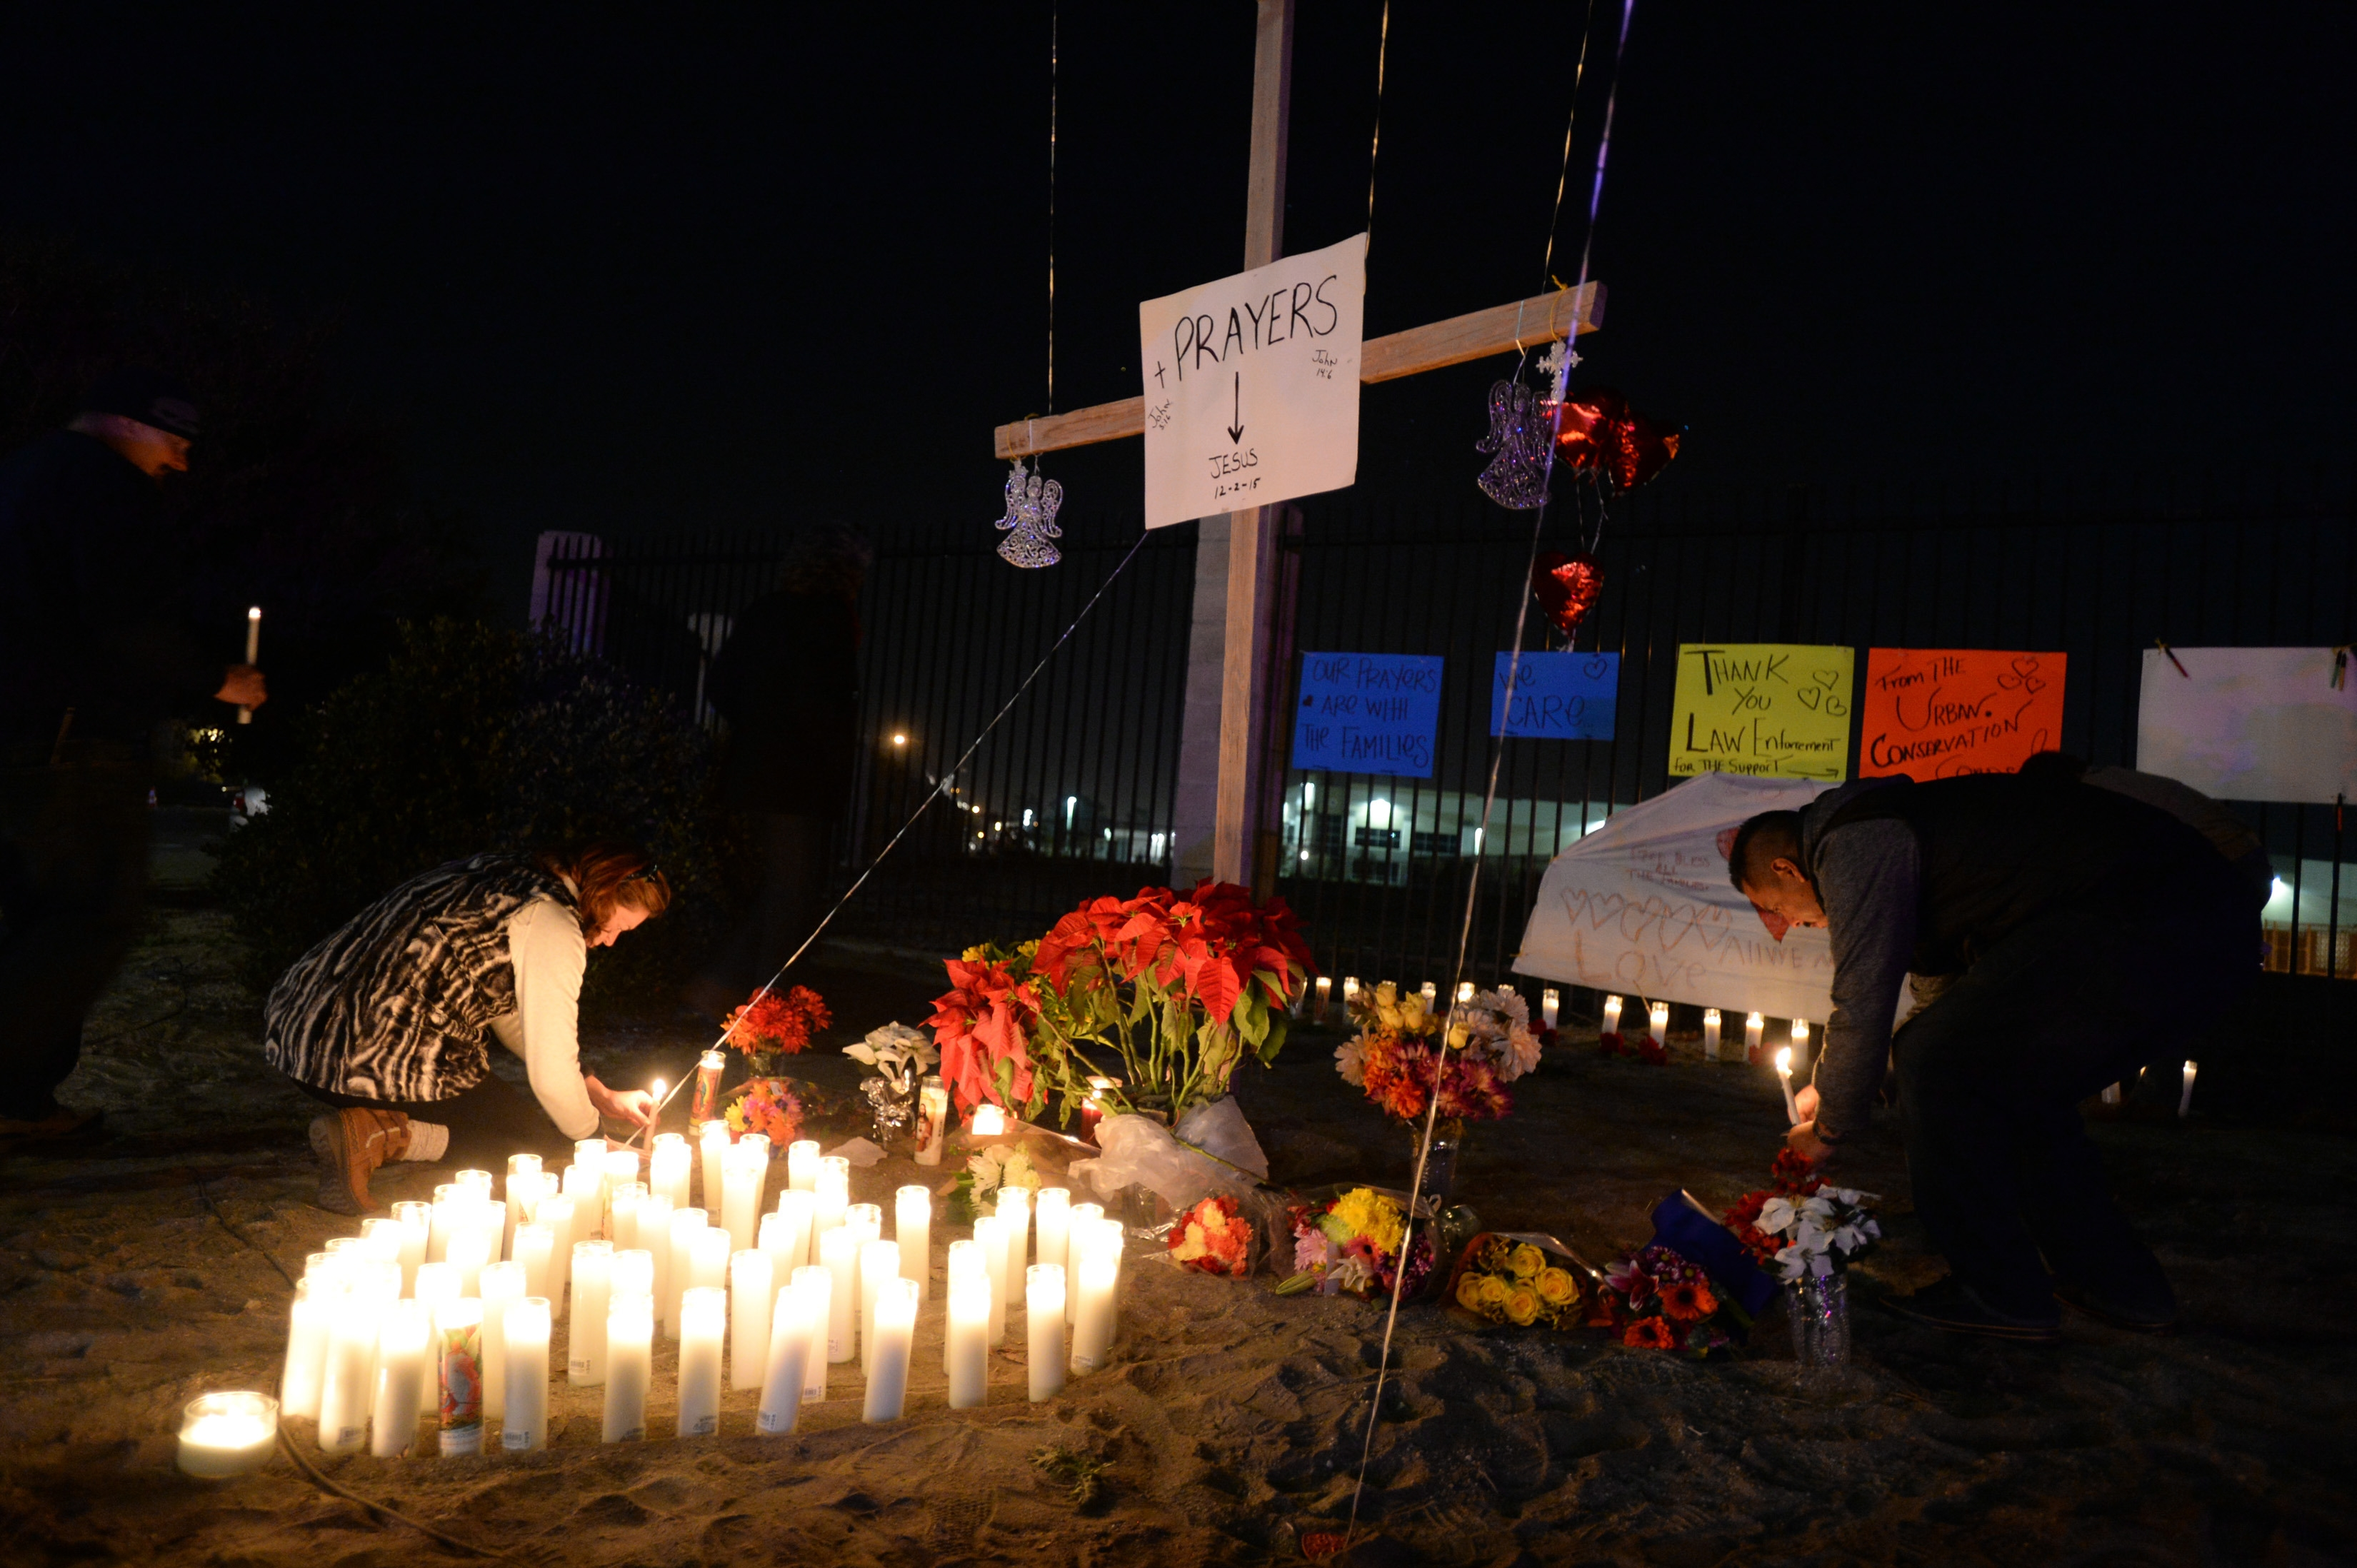 Mourners add to a memorial outside the Inland Regional Center, the scene a mass shooting that left 14 dead the day before, in San Bernardino, Calif., Dec. 3, 2015. Struck down at an office holiday party for county employees, almost all the victims were friends and colleagues, and many knew one of the two suspected gunmen, Syed Rizwan Farook, a co-worker. (Axel Koester/The New York Times)